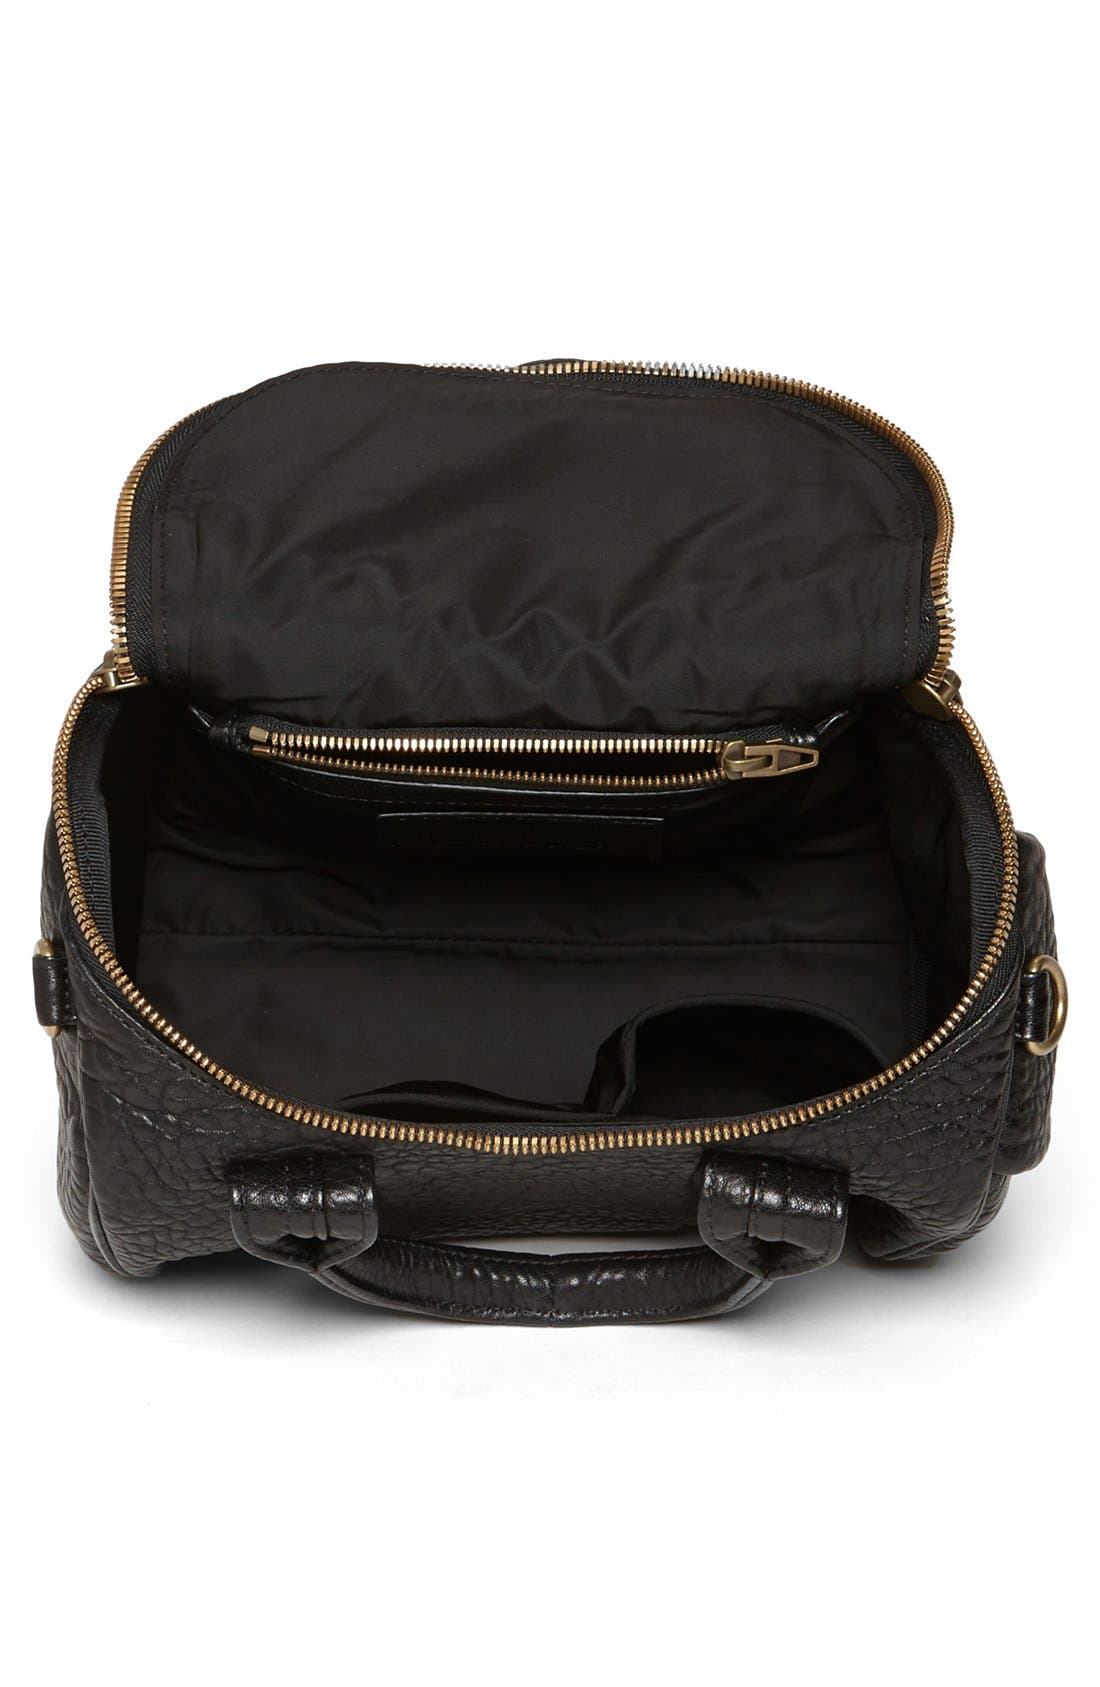 Alternate Image 3  - Alexander Wang 'Rockie - Antique Brass' Leather Crossbody Satchel